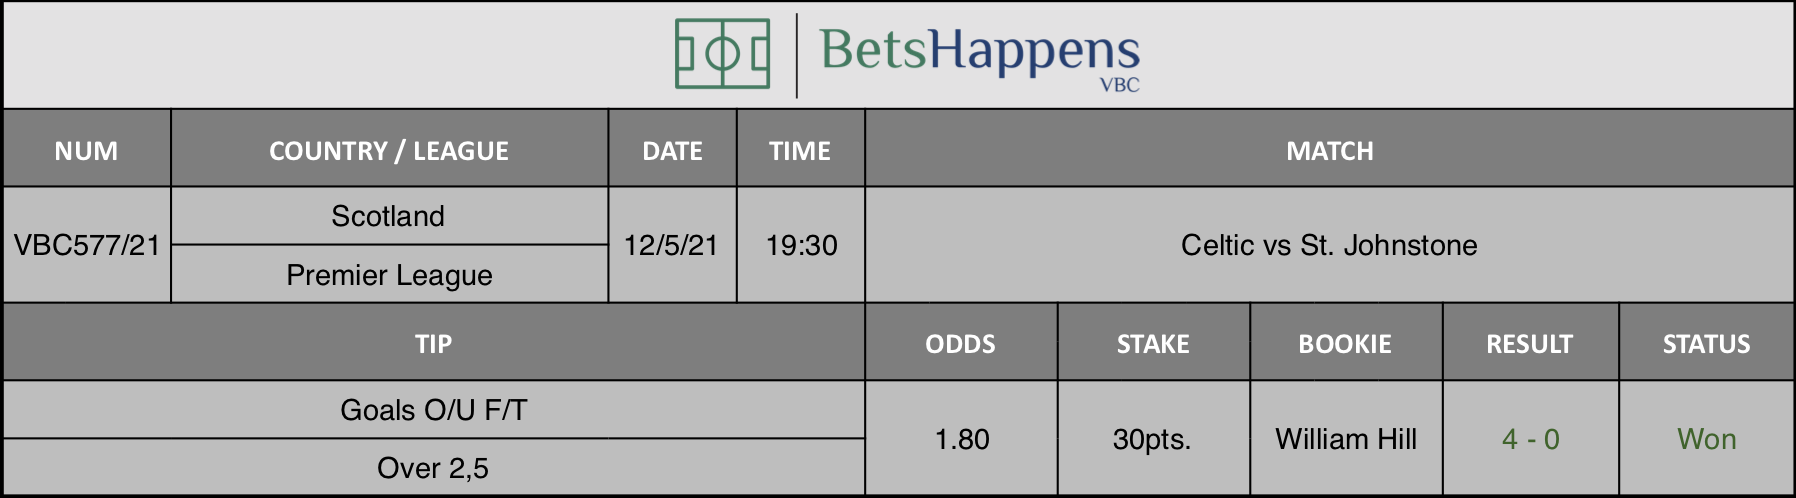 Results of our tip for the Celtic vs St. Johnstone match where Goals O/U F/T Over 2,5 is recommended.